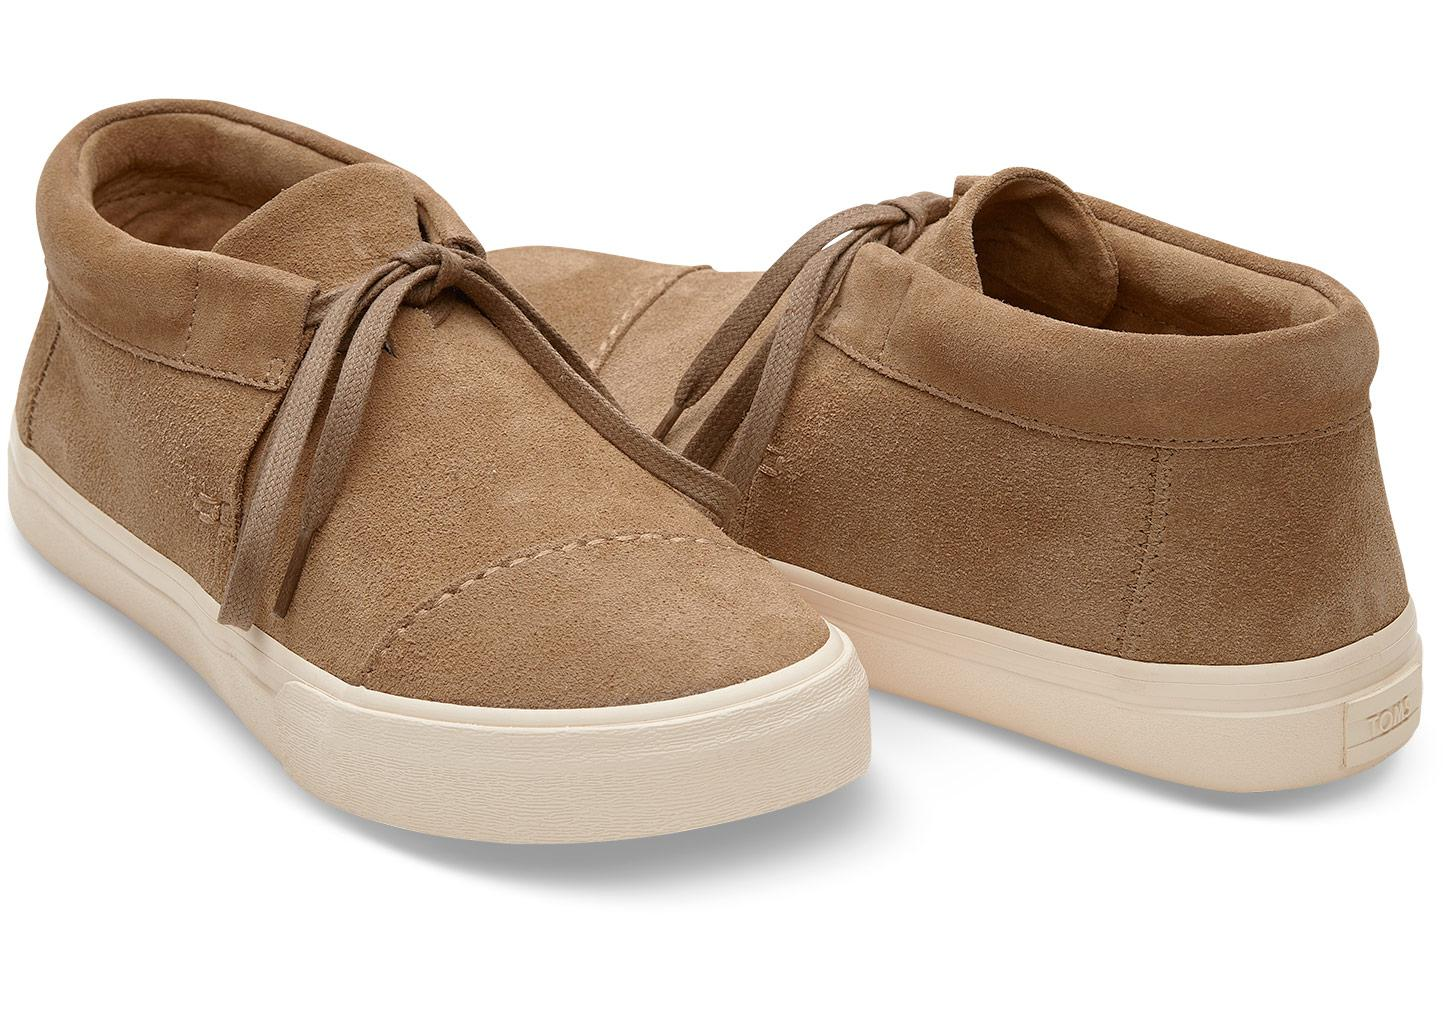 Emerson Mid Sneaker TOMS pWetWHuxy